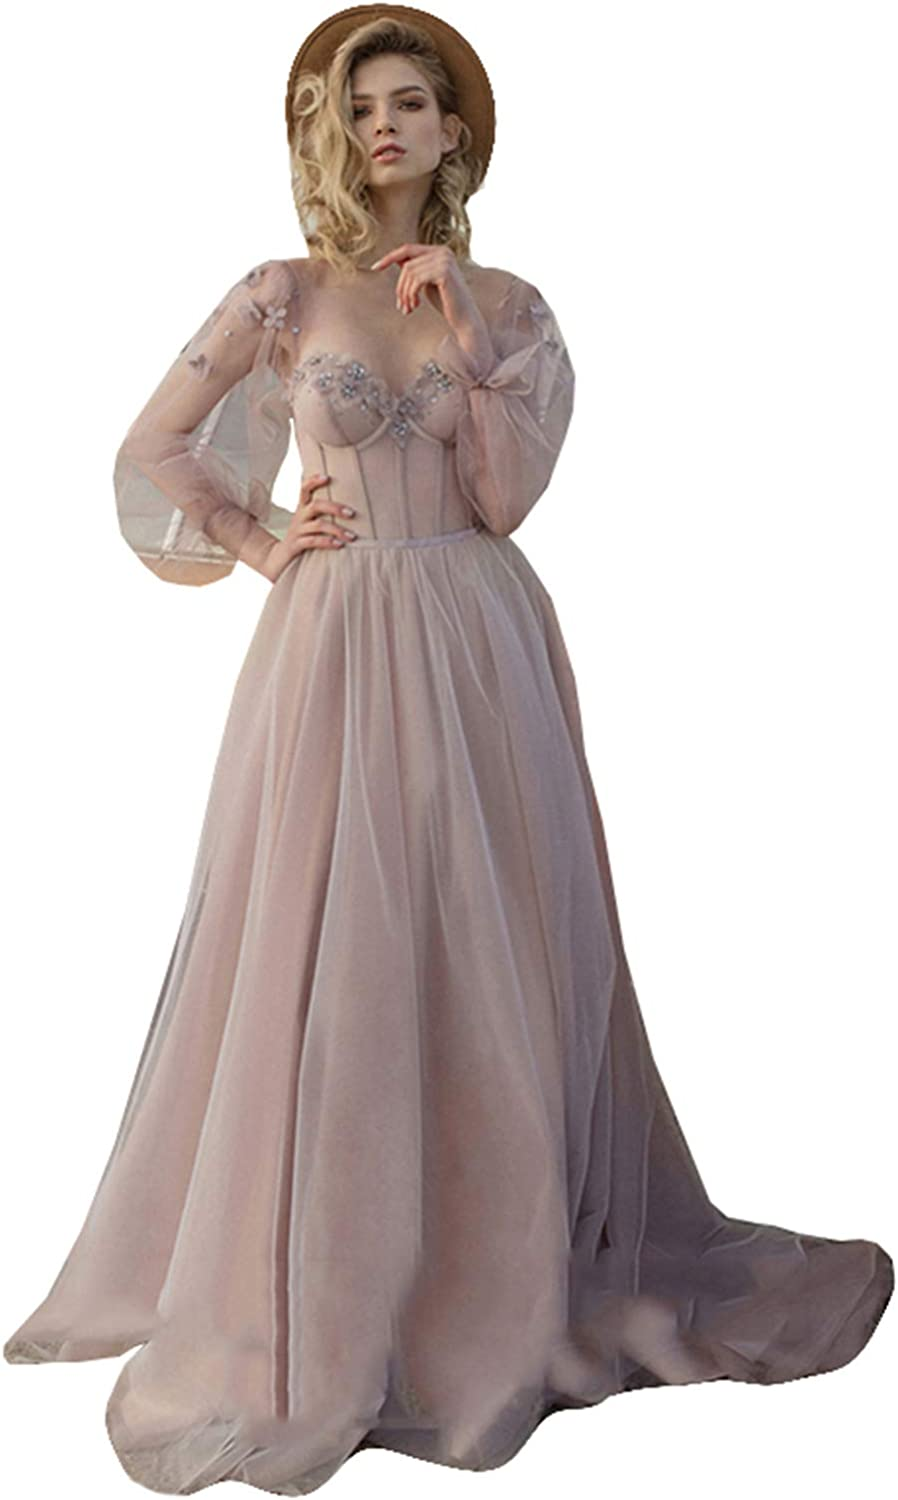 Fanciest Vintage Puffy Sleeve Prom Dresses Ball Gown for Women Formal Long Sleeve Backless Evening Gown